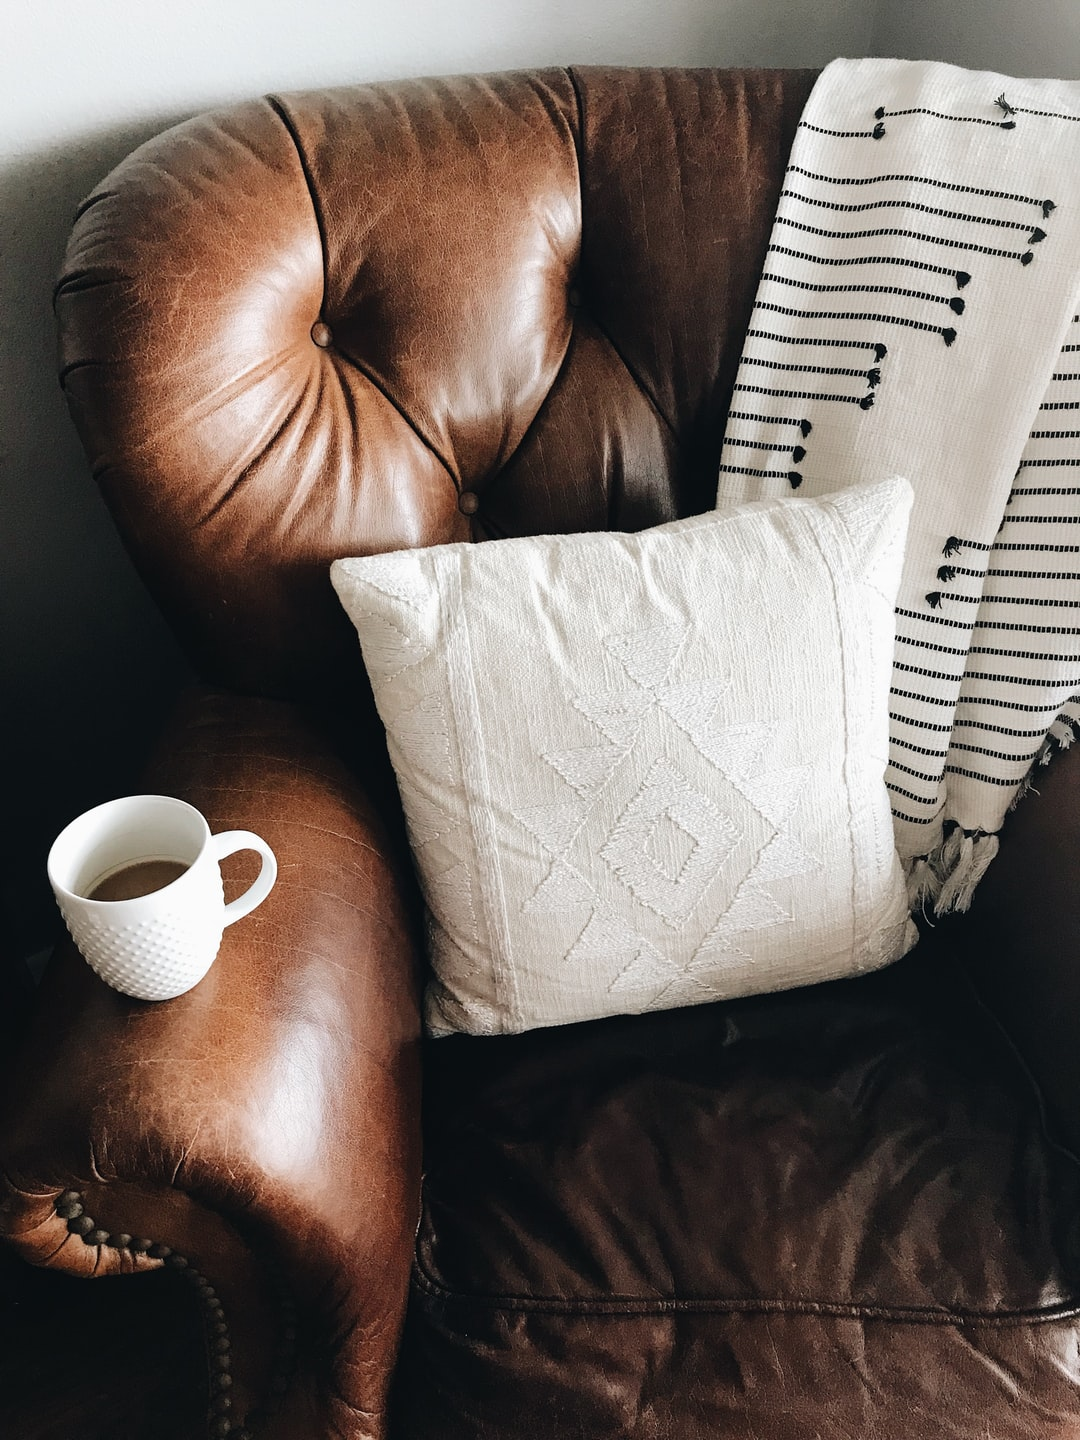 This chair is where every morning begins - a fresh cup of coffee and my cat Tegan on my lap. I got this amazing leather chair for just $40 off of Craigslist and it's probably my favorite place in the house! Cheers to leaving the 9-5 life and being my own boss!